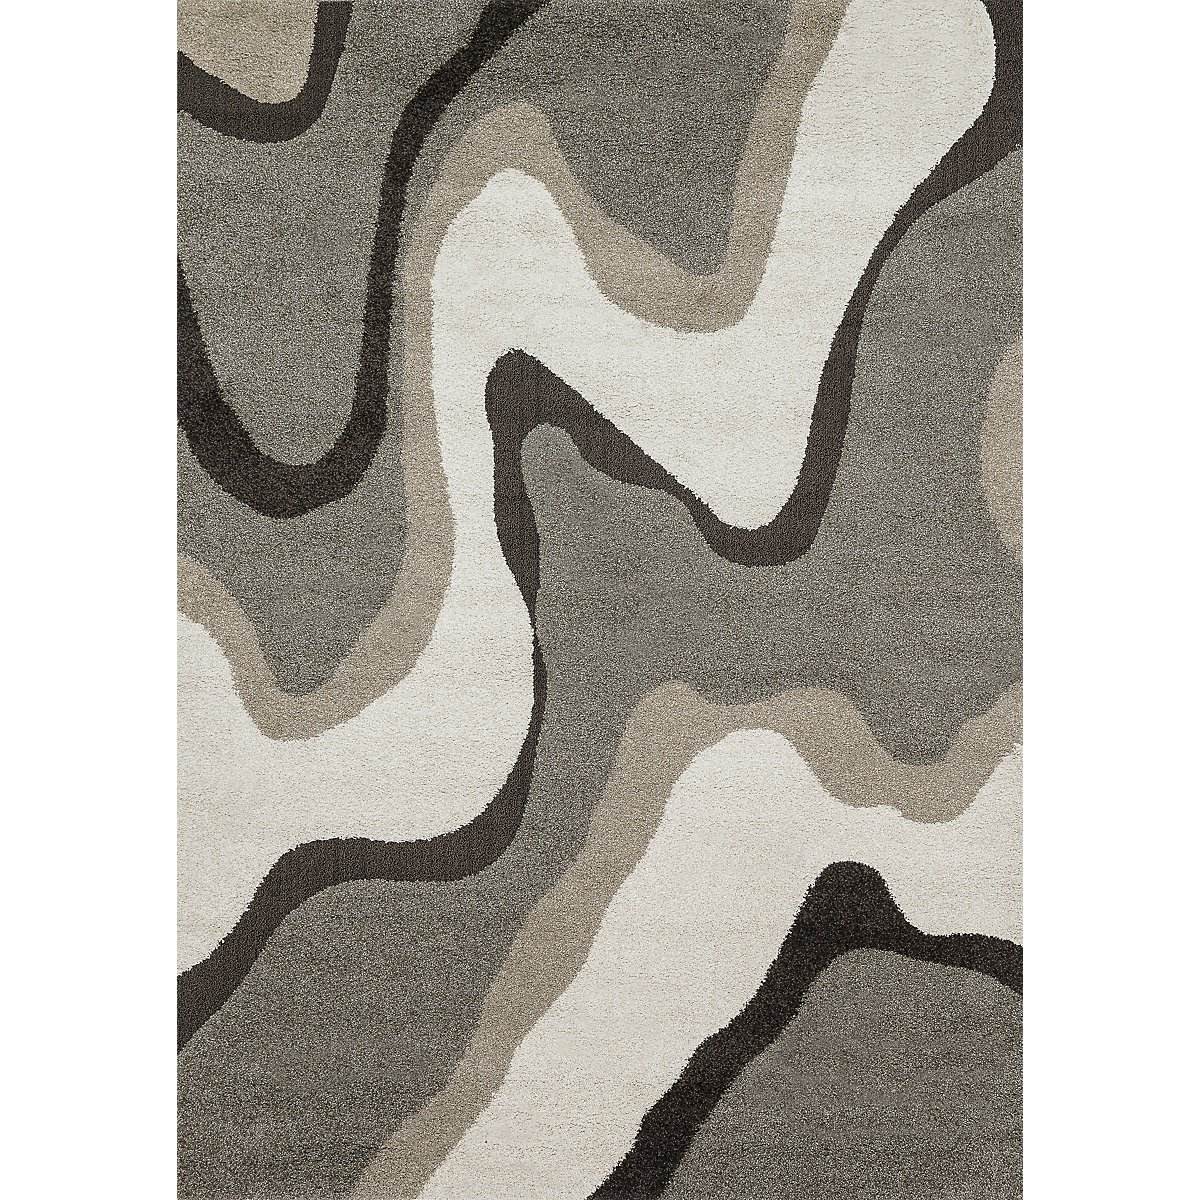 Encore Multicolored 8X11 Area Rug